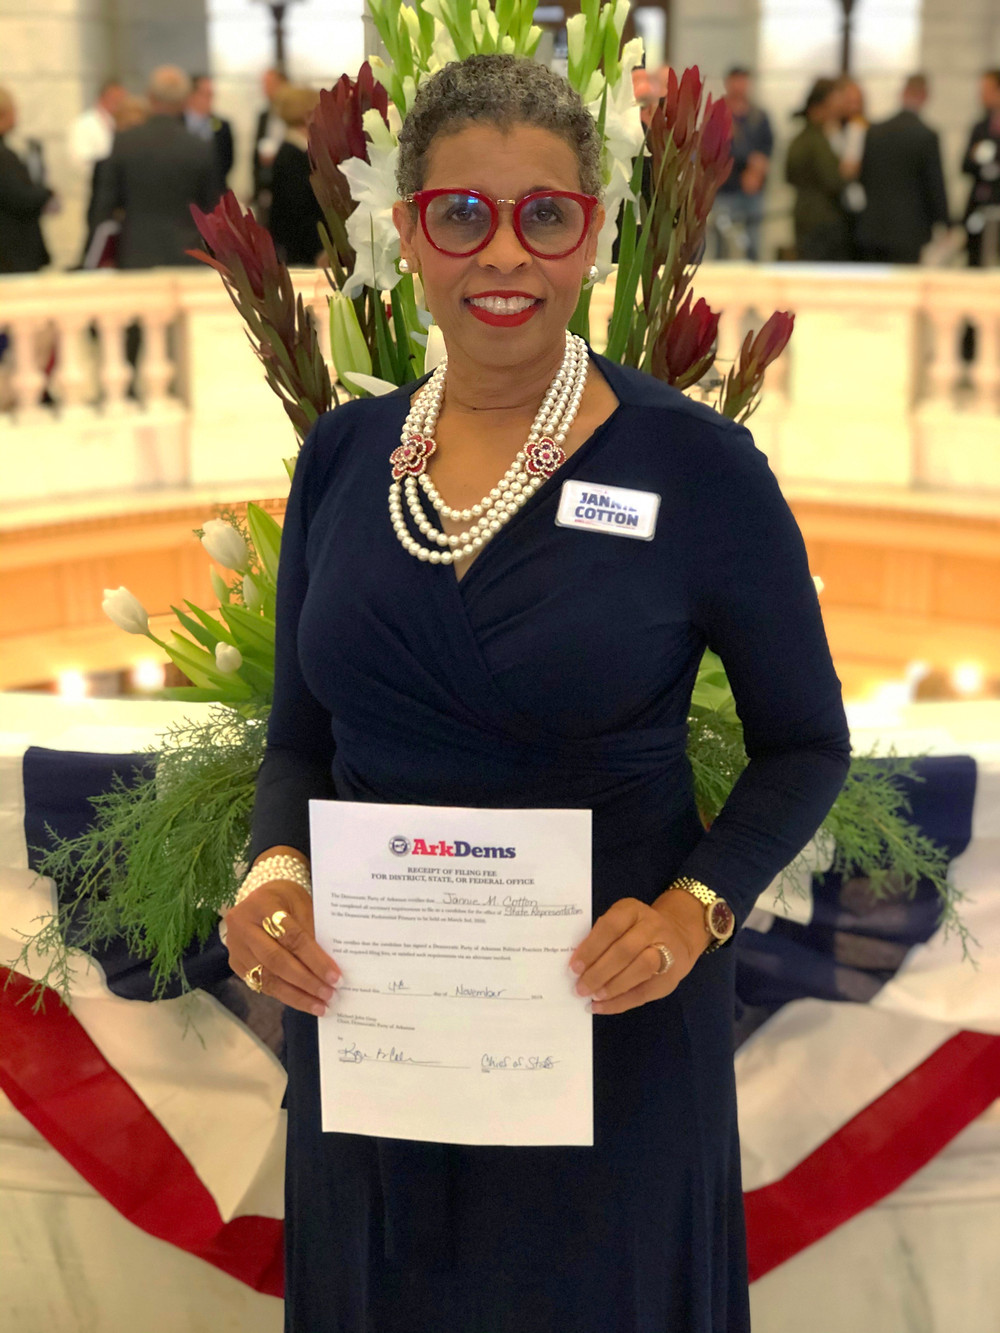 Jannie Cotton officially files to run for State Representative of District 41 at the Arkansas State Capitol Building